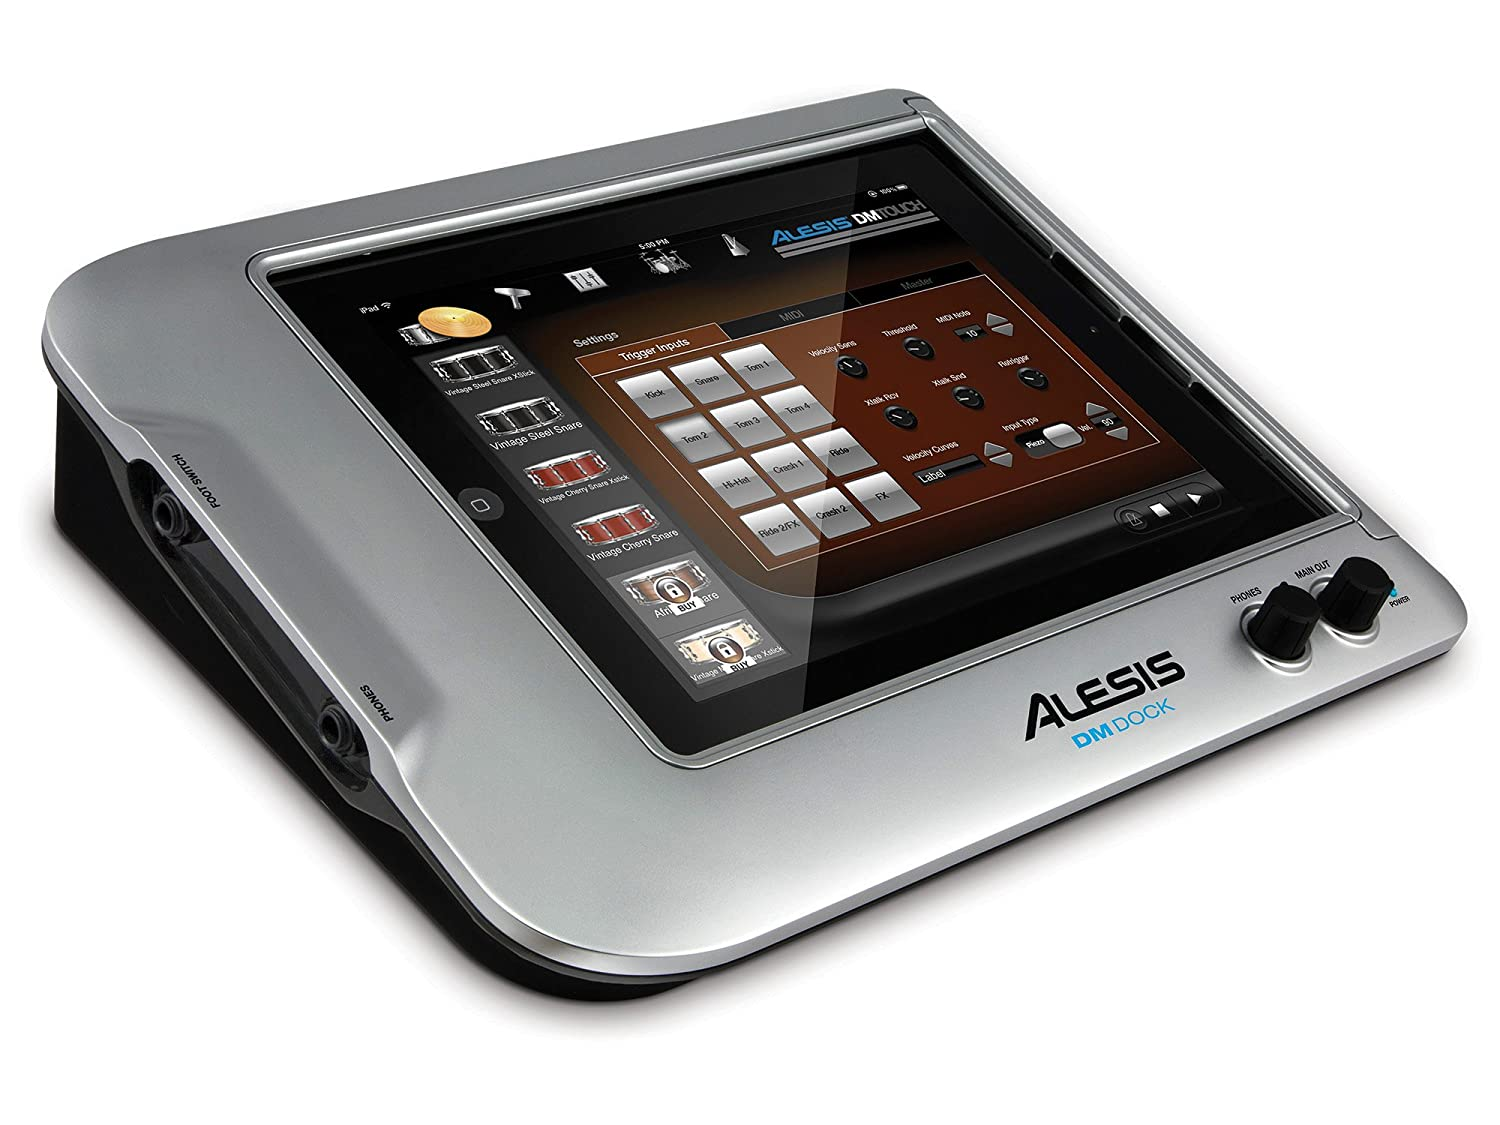 Alesis DM Dock | Drum Interface to Use iPad as Full-Color, Multi-Touch Drum Module (12 Trigger + 1 Hi-Hat Inputs)